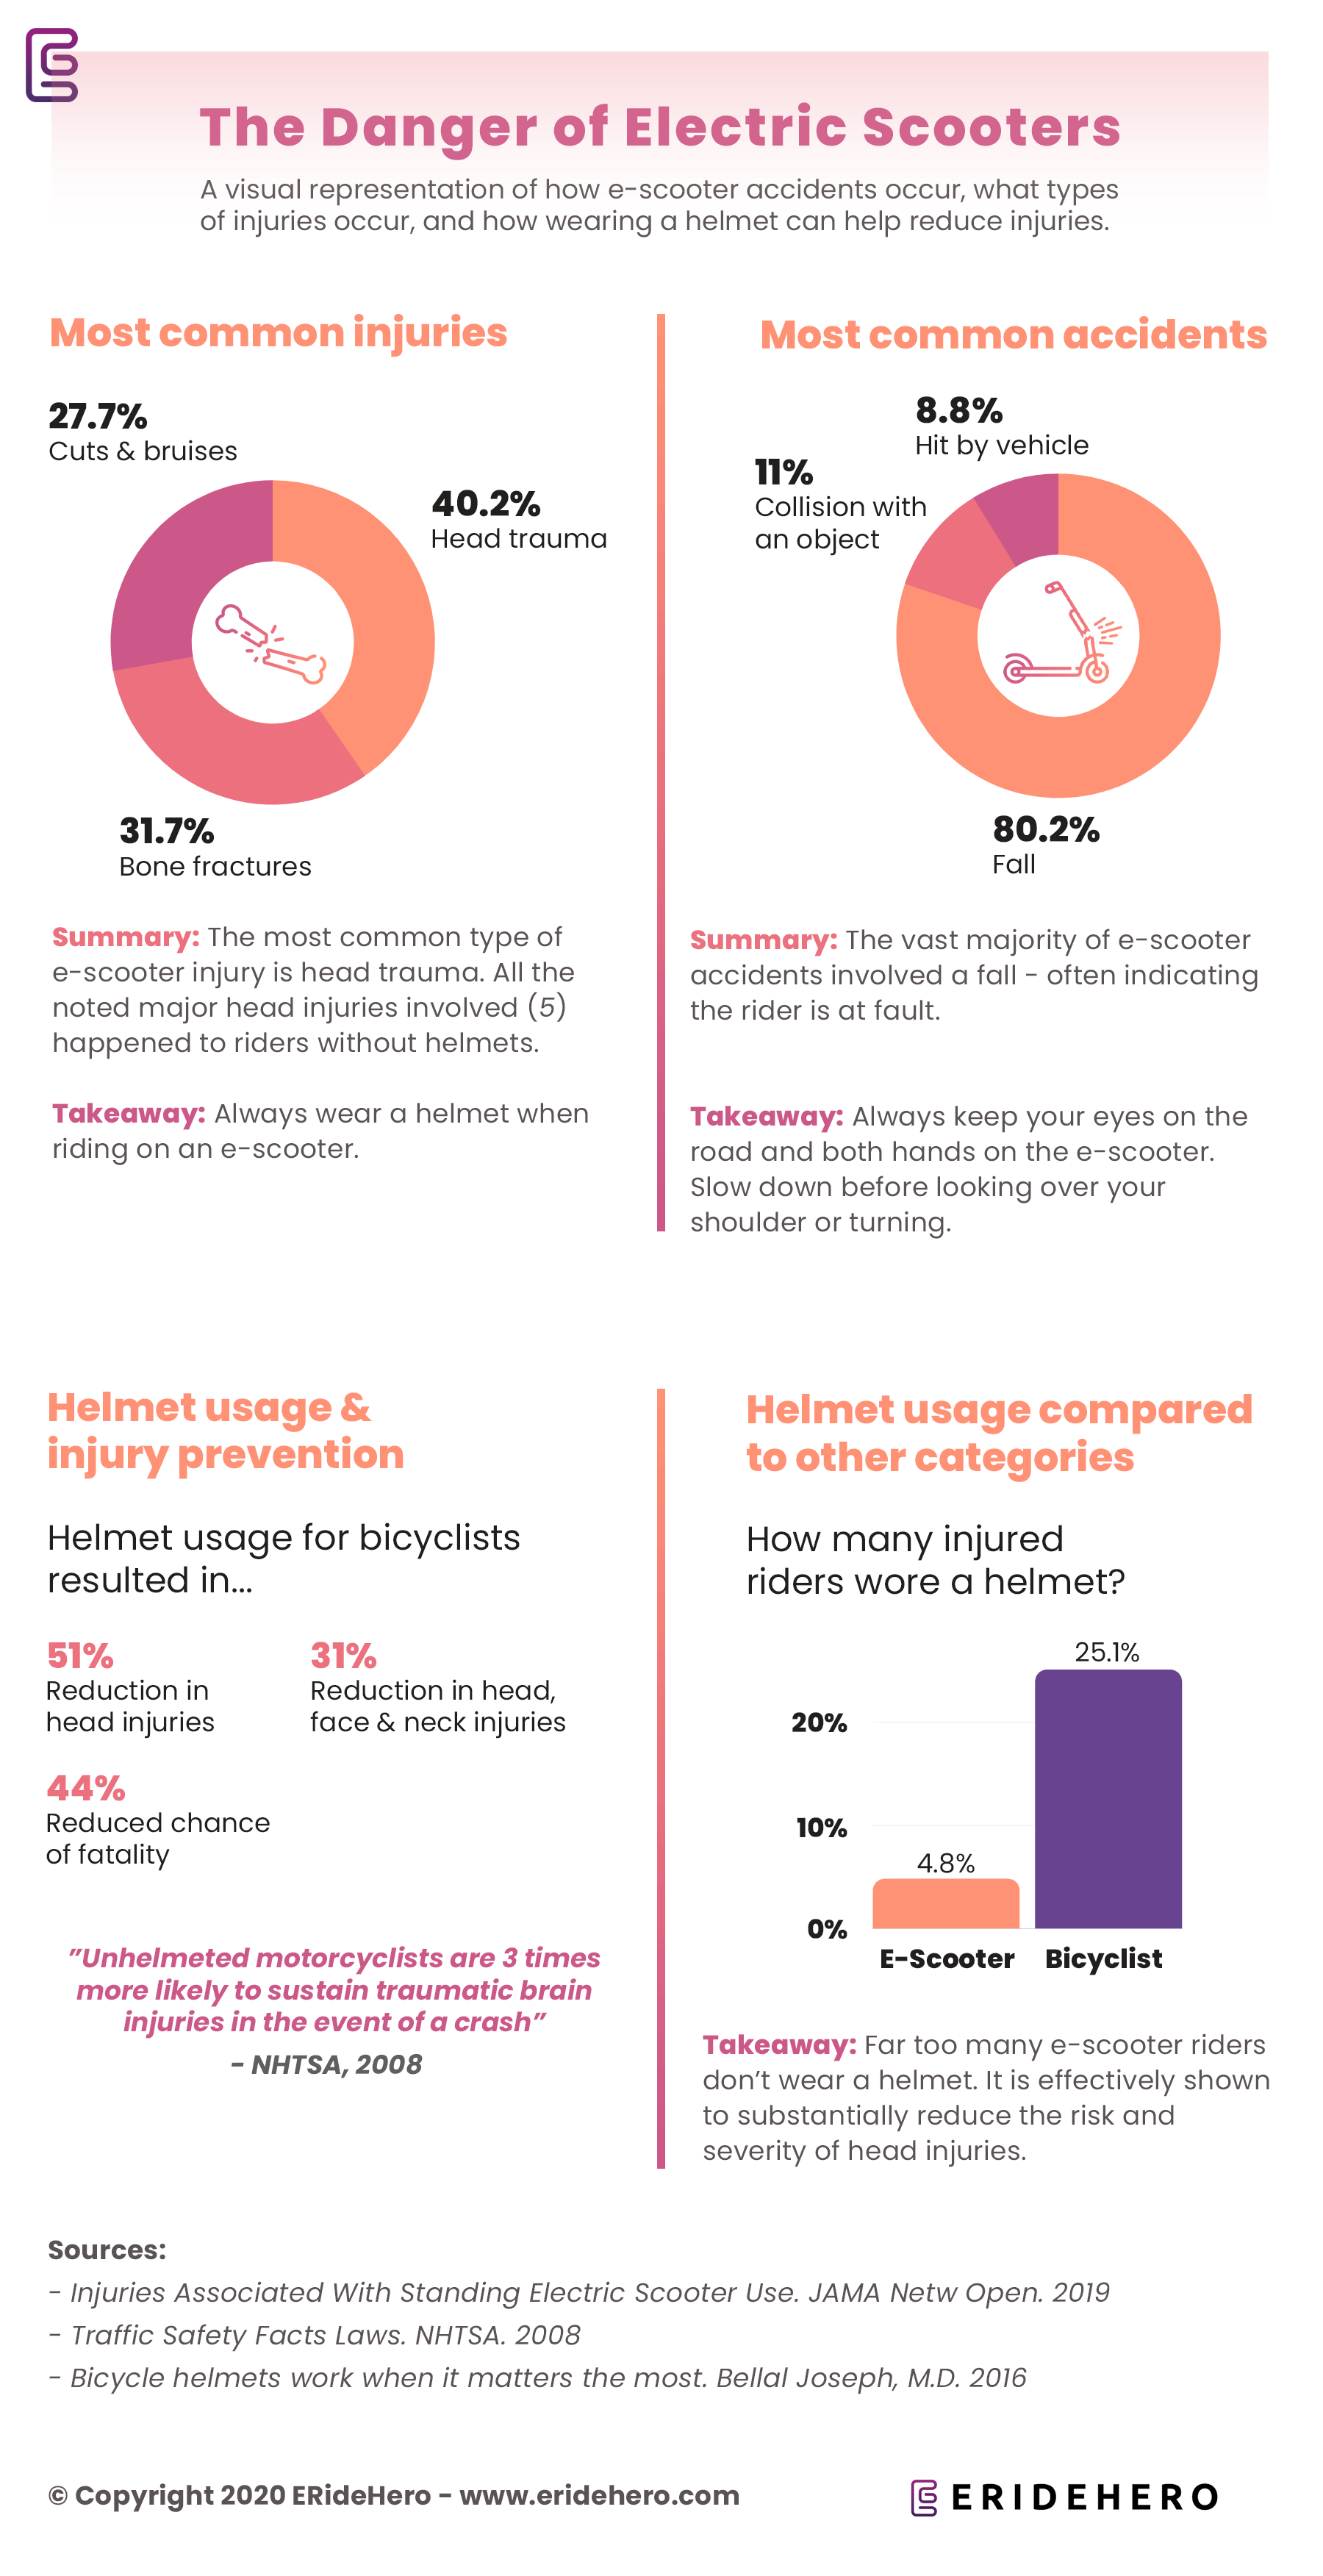 The dangers of Electric Scooters - E-scooter injury statistics infographic